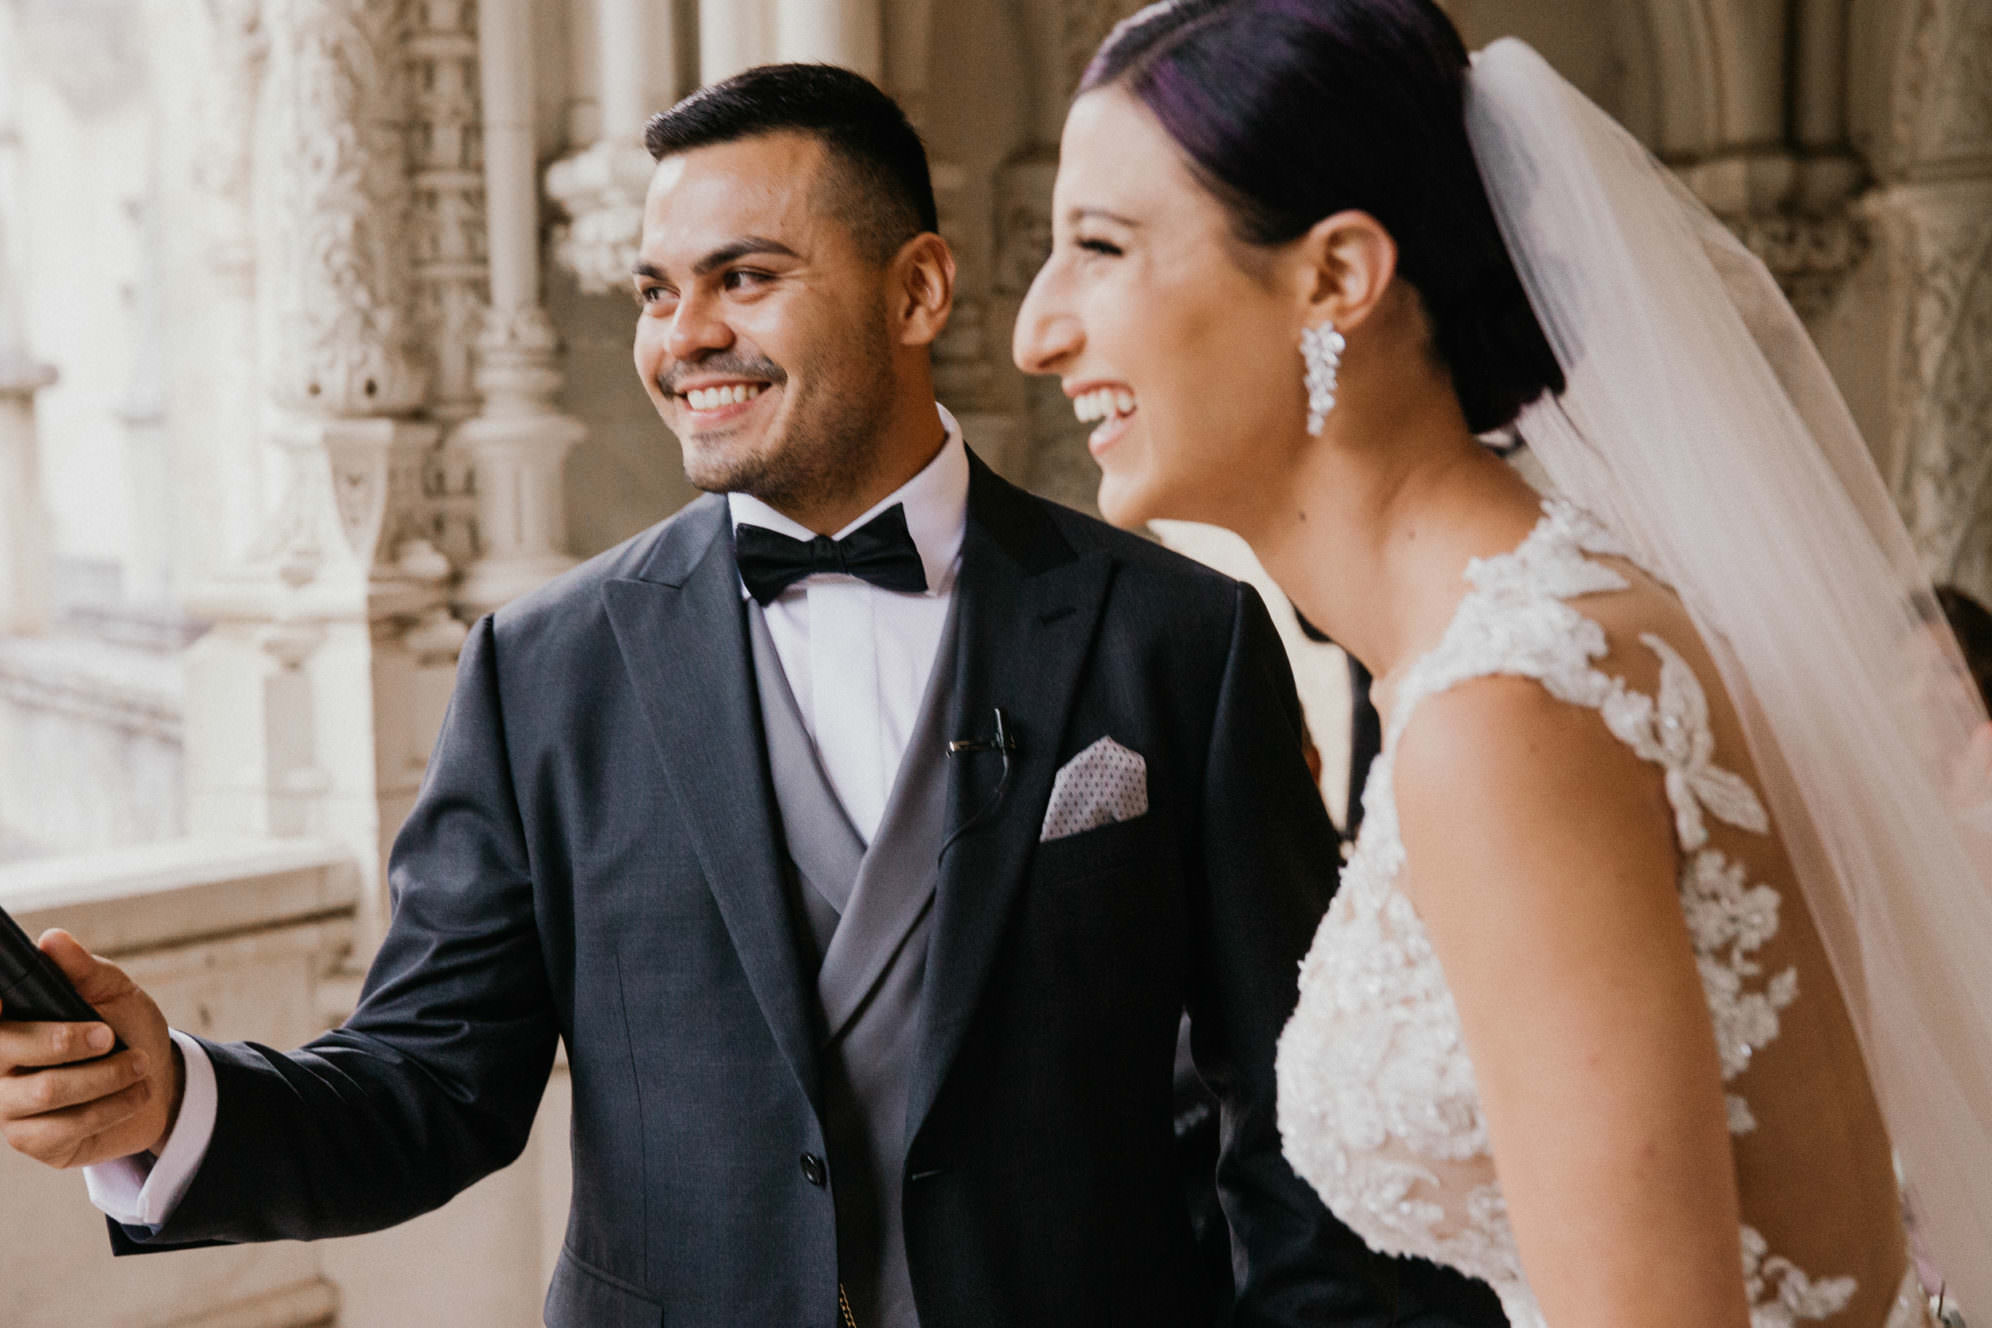 Destination wedding in Portugal at Bussaco Palace